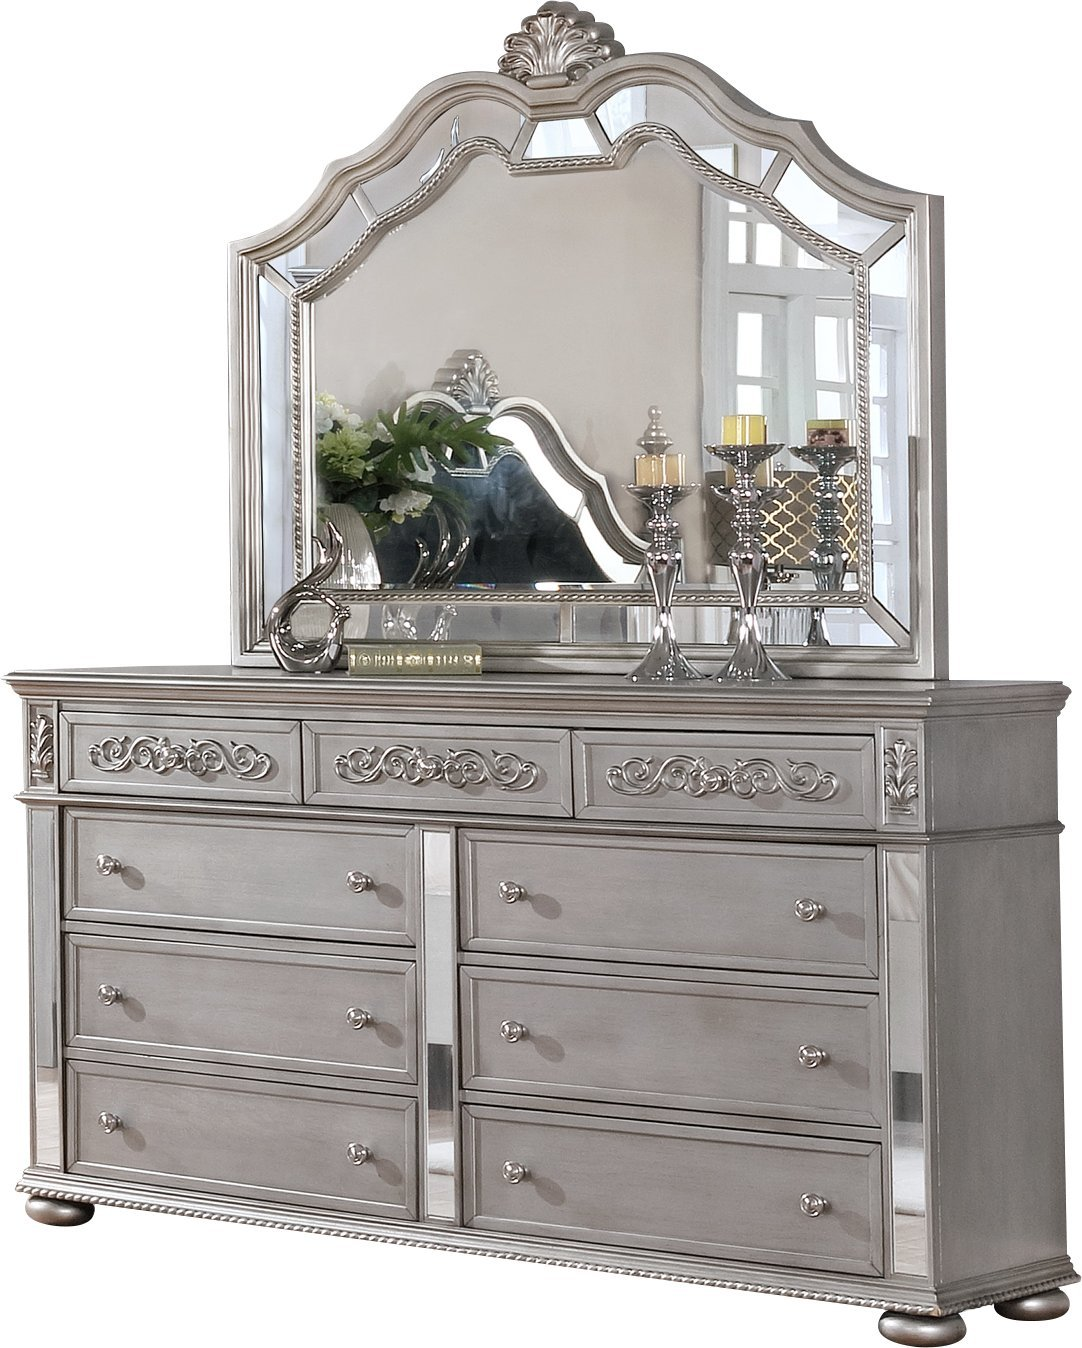 Best Quality Furniture 9 Drawer by Best Quality